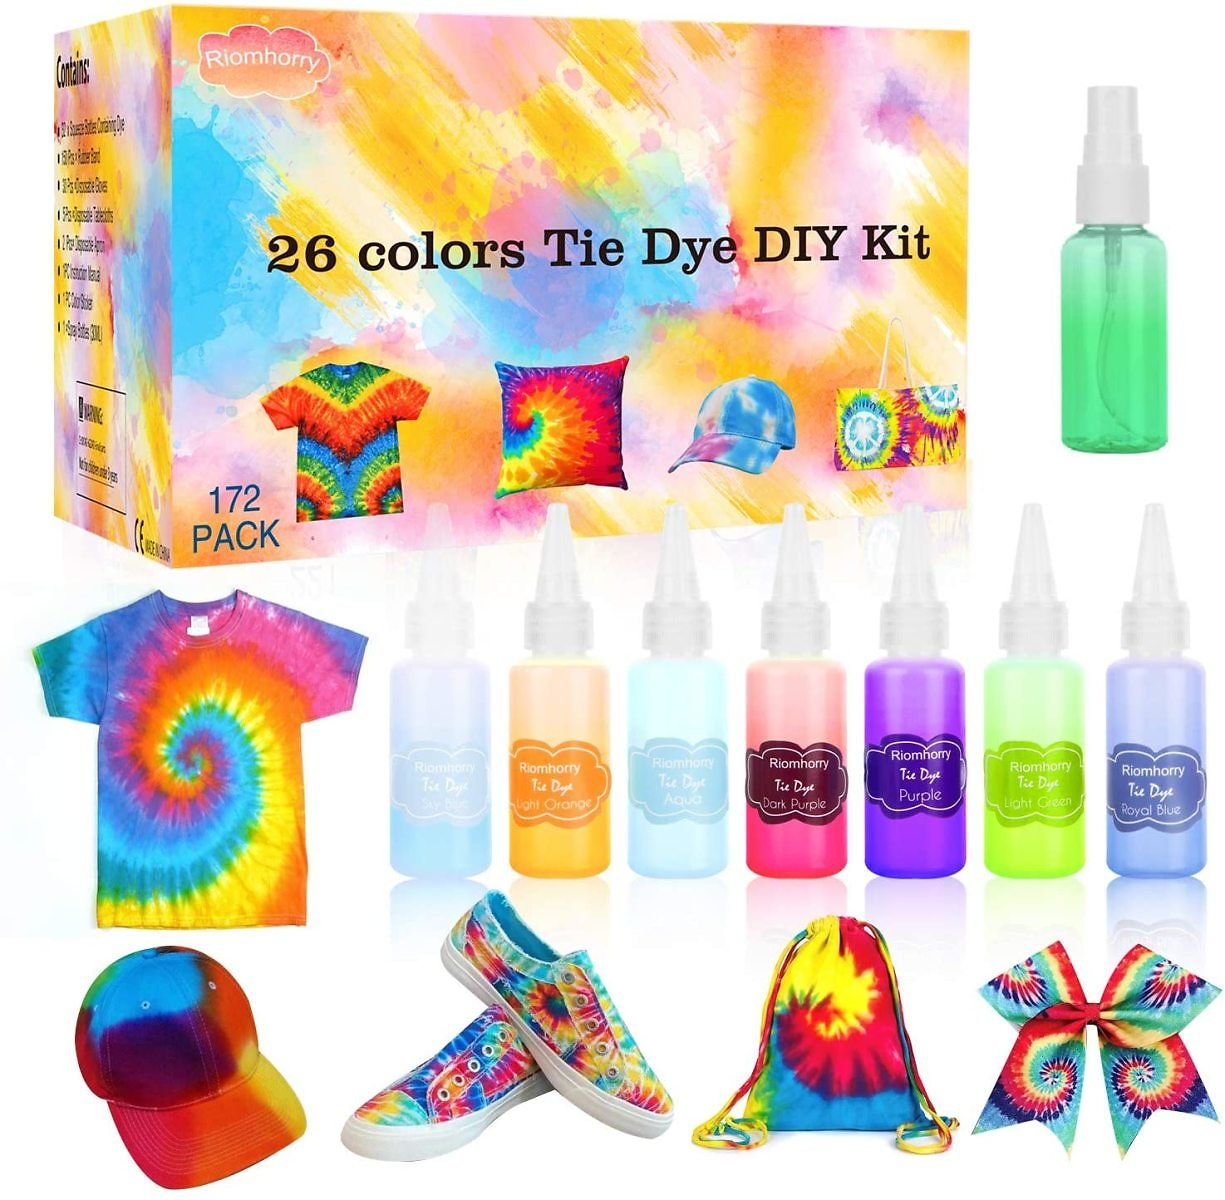 Riomhorry Tie Dye Kits, 26 Colors Tie Dye DIY- Kit for Kids, Women, Party Fabric Dye with Gloves, Aprons, Rubber Bands and Plastic Table Covers